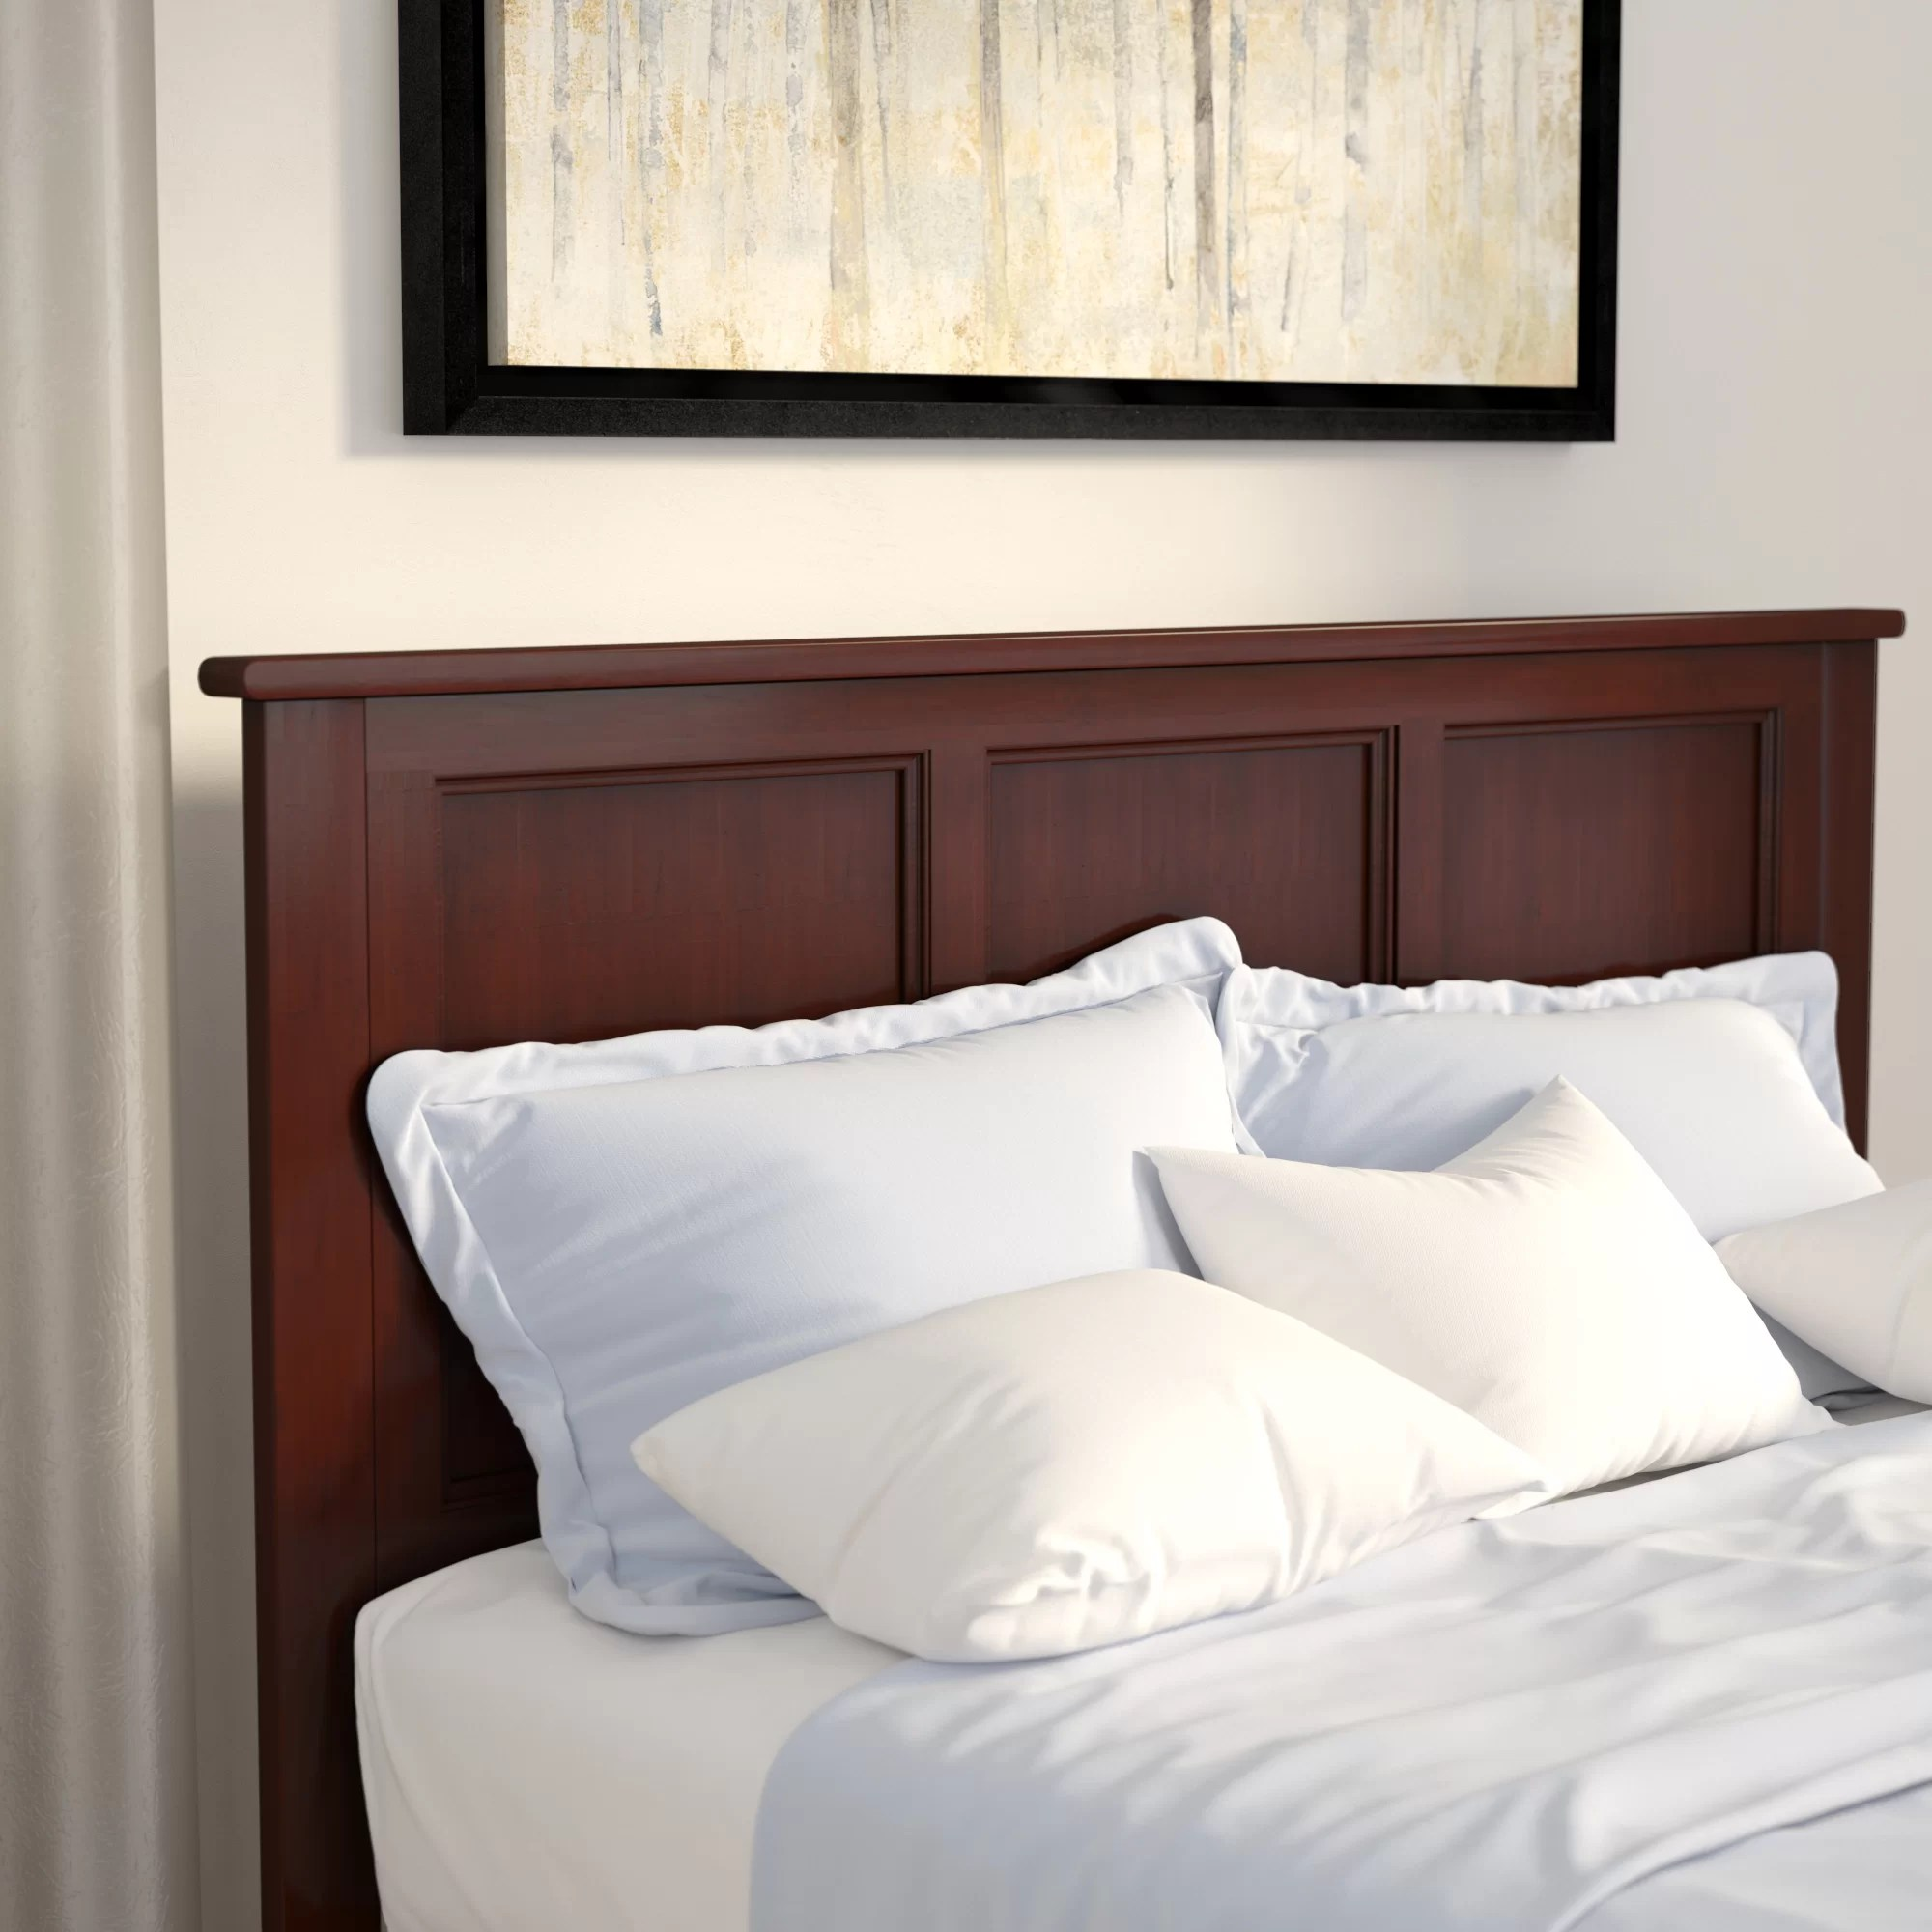 Bed Headboard Marjorie Panel Headboard